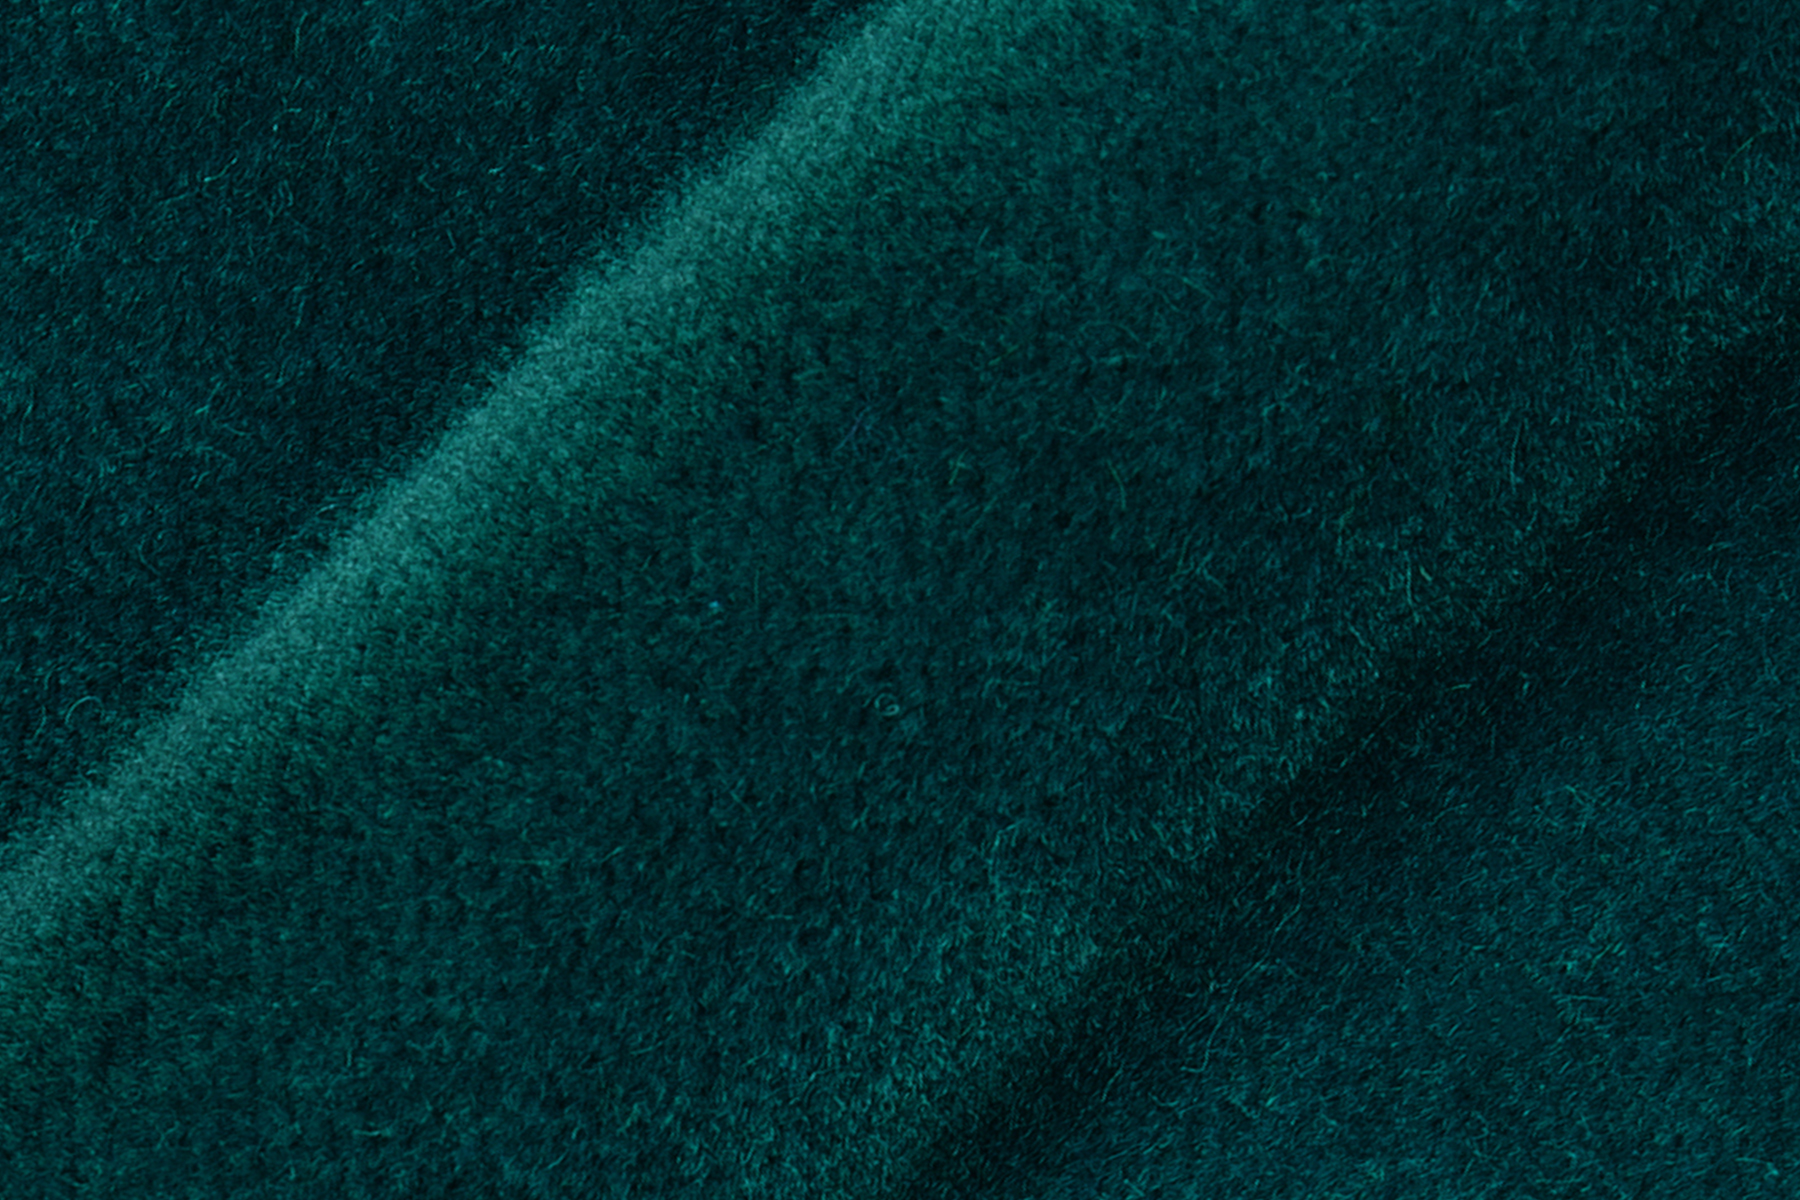 LUX VELVET 0615 DUSTY TURQUOISE Fabric by KOKET